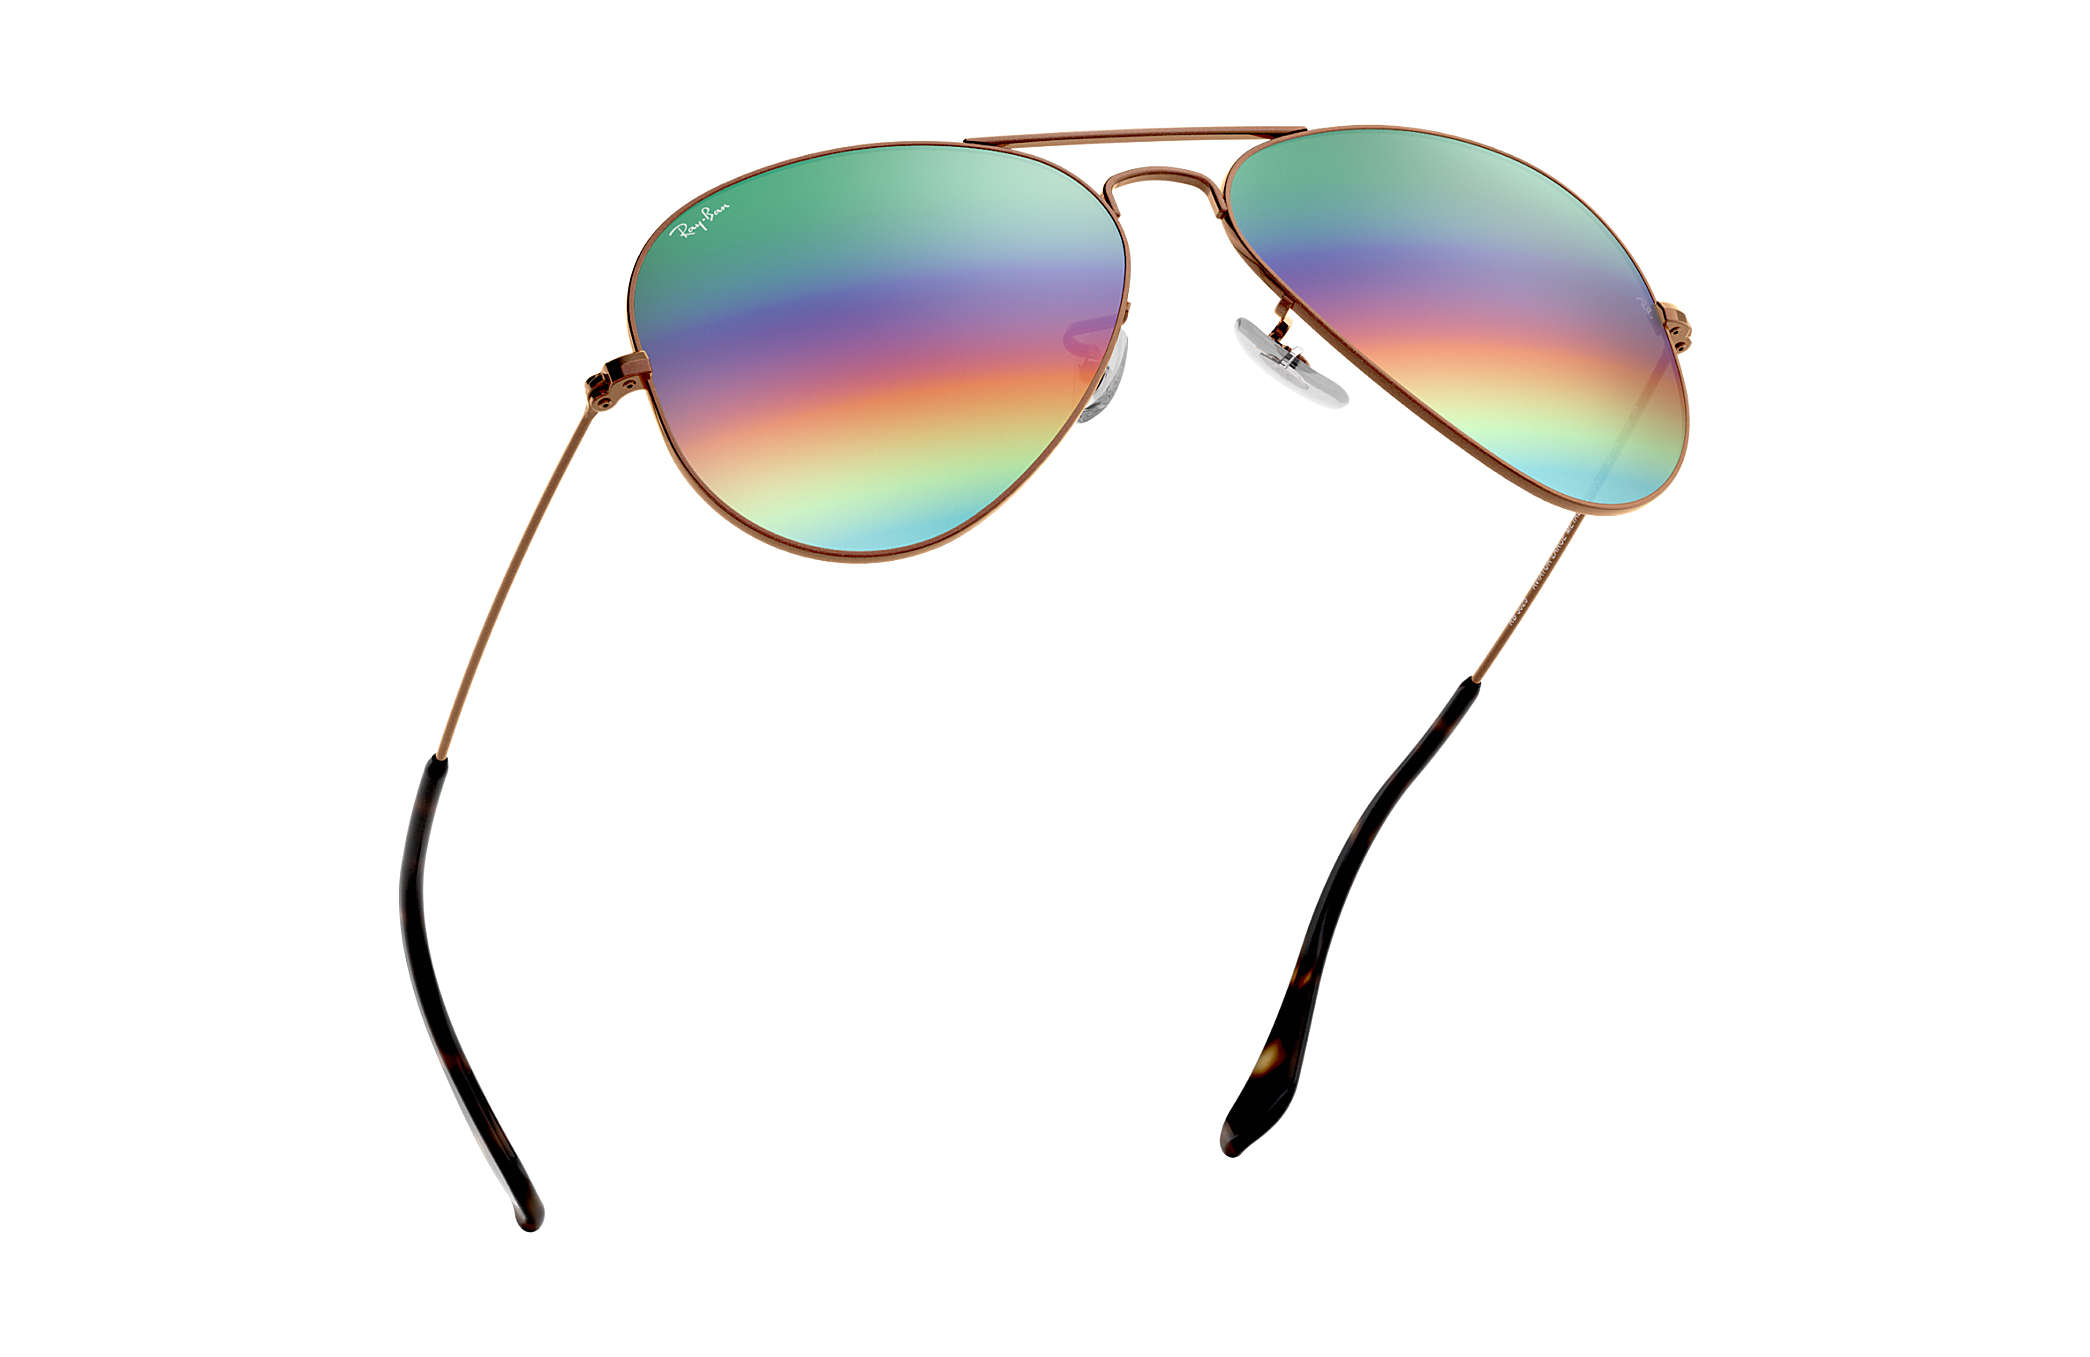 c27ed67c99 ... Ray-Ban 0RB3025-AVIATOR MINERAL FLASH LENSES Bronze-Copper SUN ...